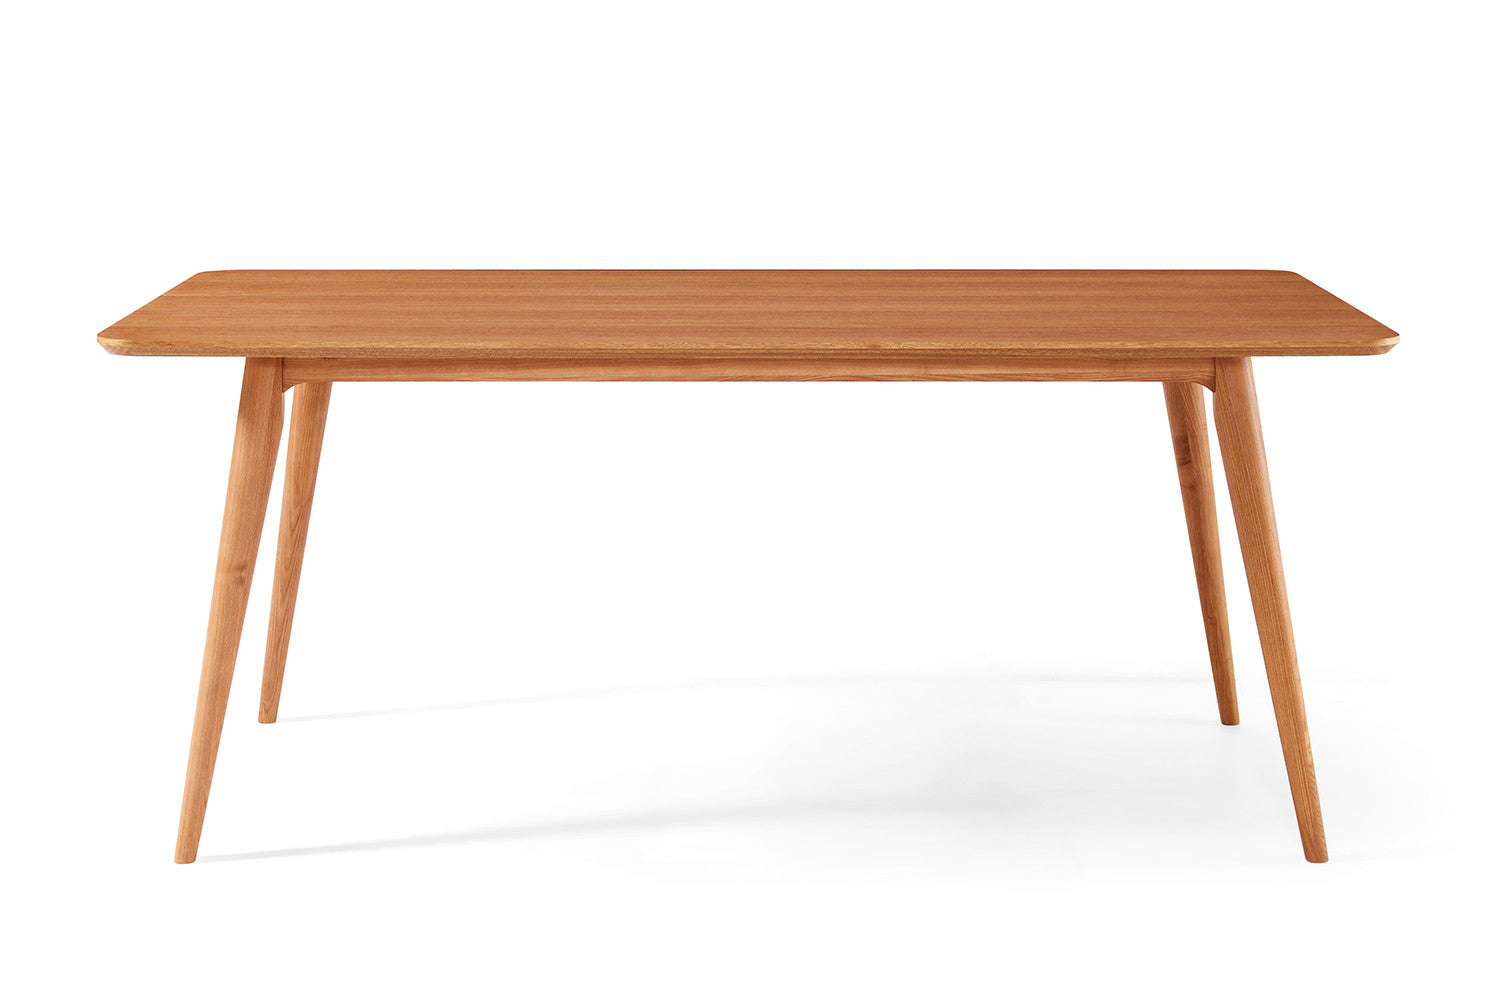 Table de salle manger design en bois julia dewarens for Table a manger en bois